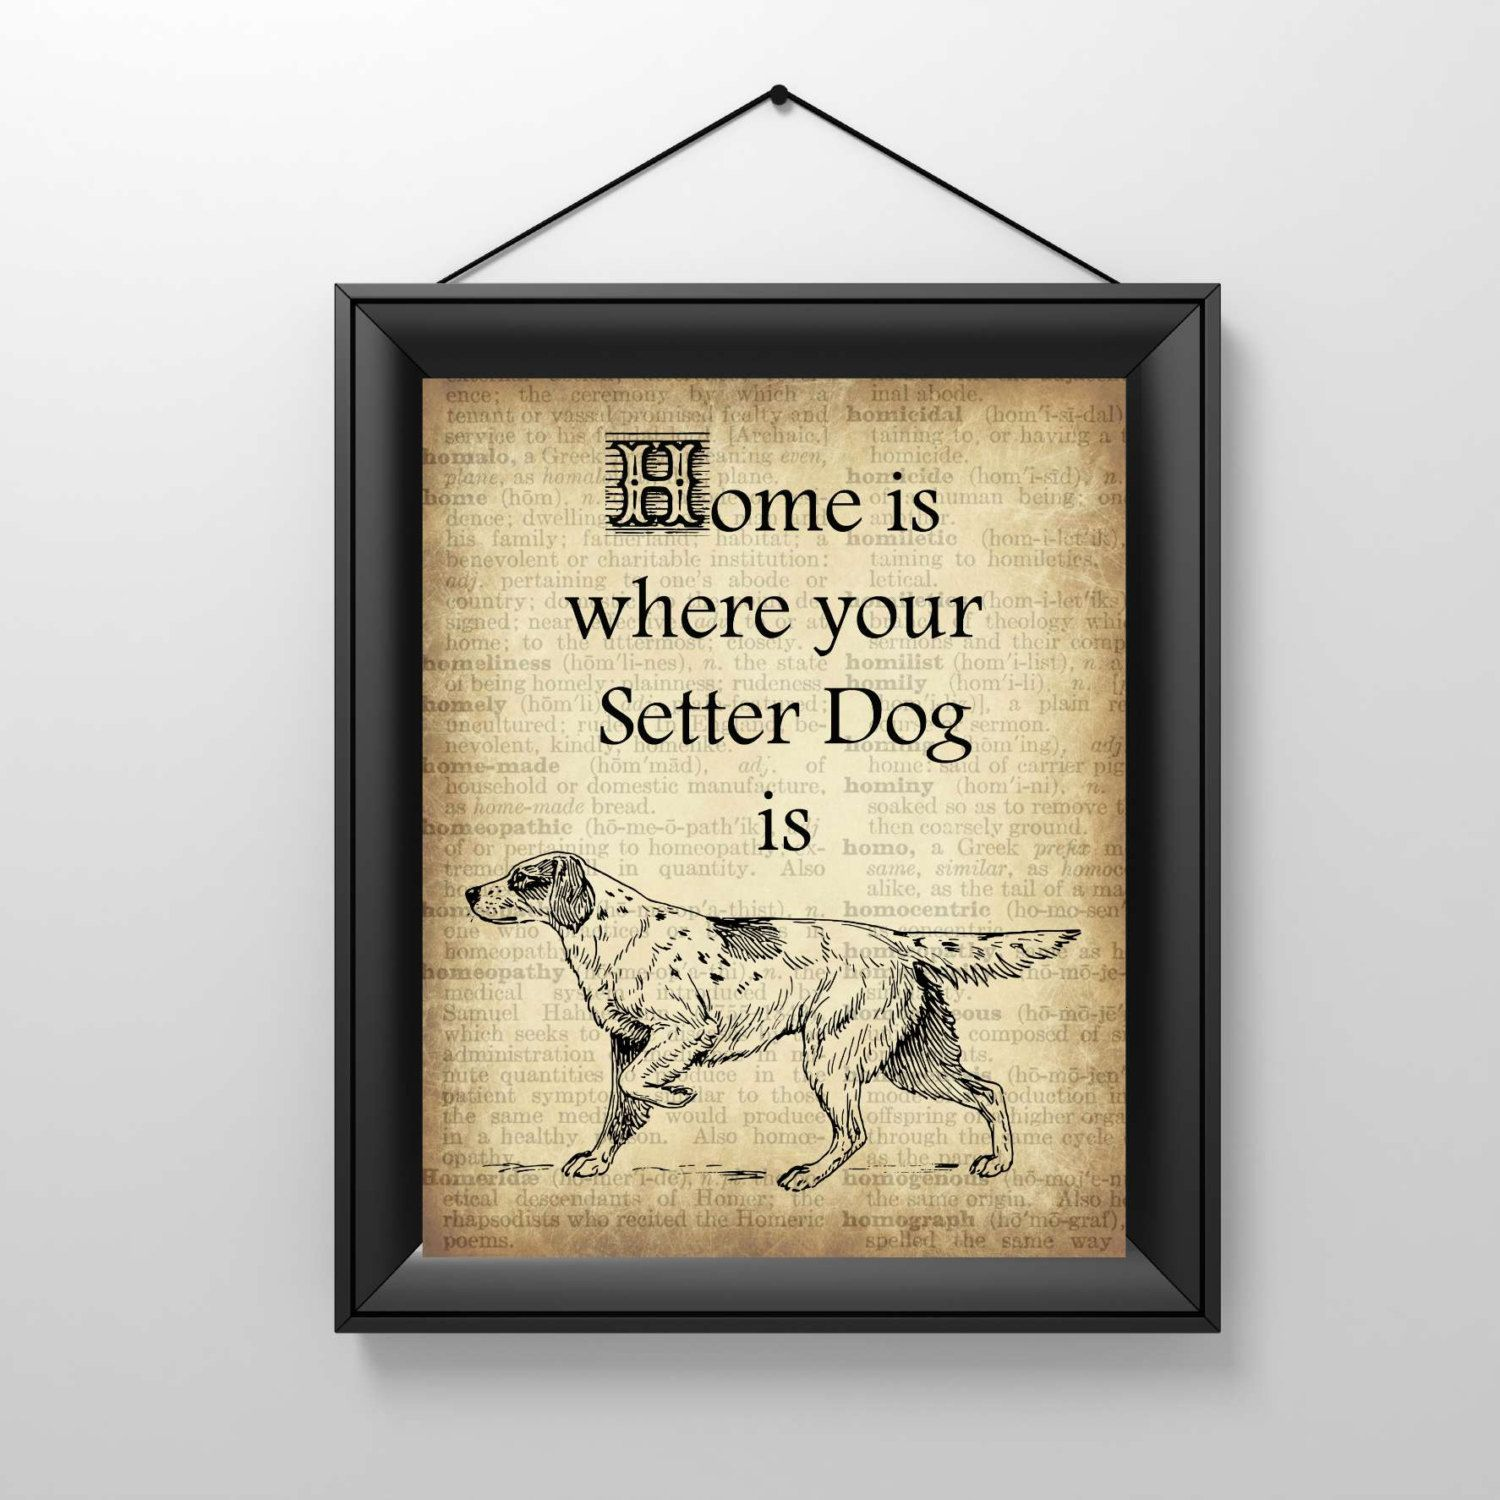 Vintage Dog Illustration, Home is where your Setter Dog is, Dog Art Print, Dictionary Art Print,  Instant Download, Downloadable Sign Poster by DigitalDogPrints on Etsy